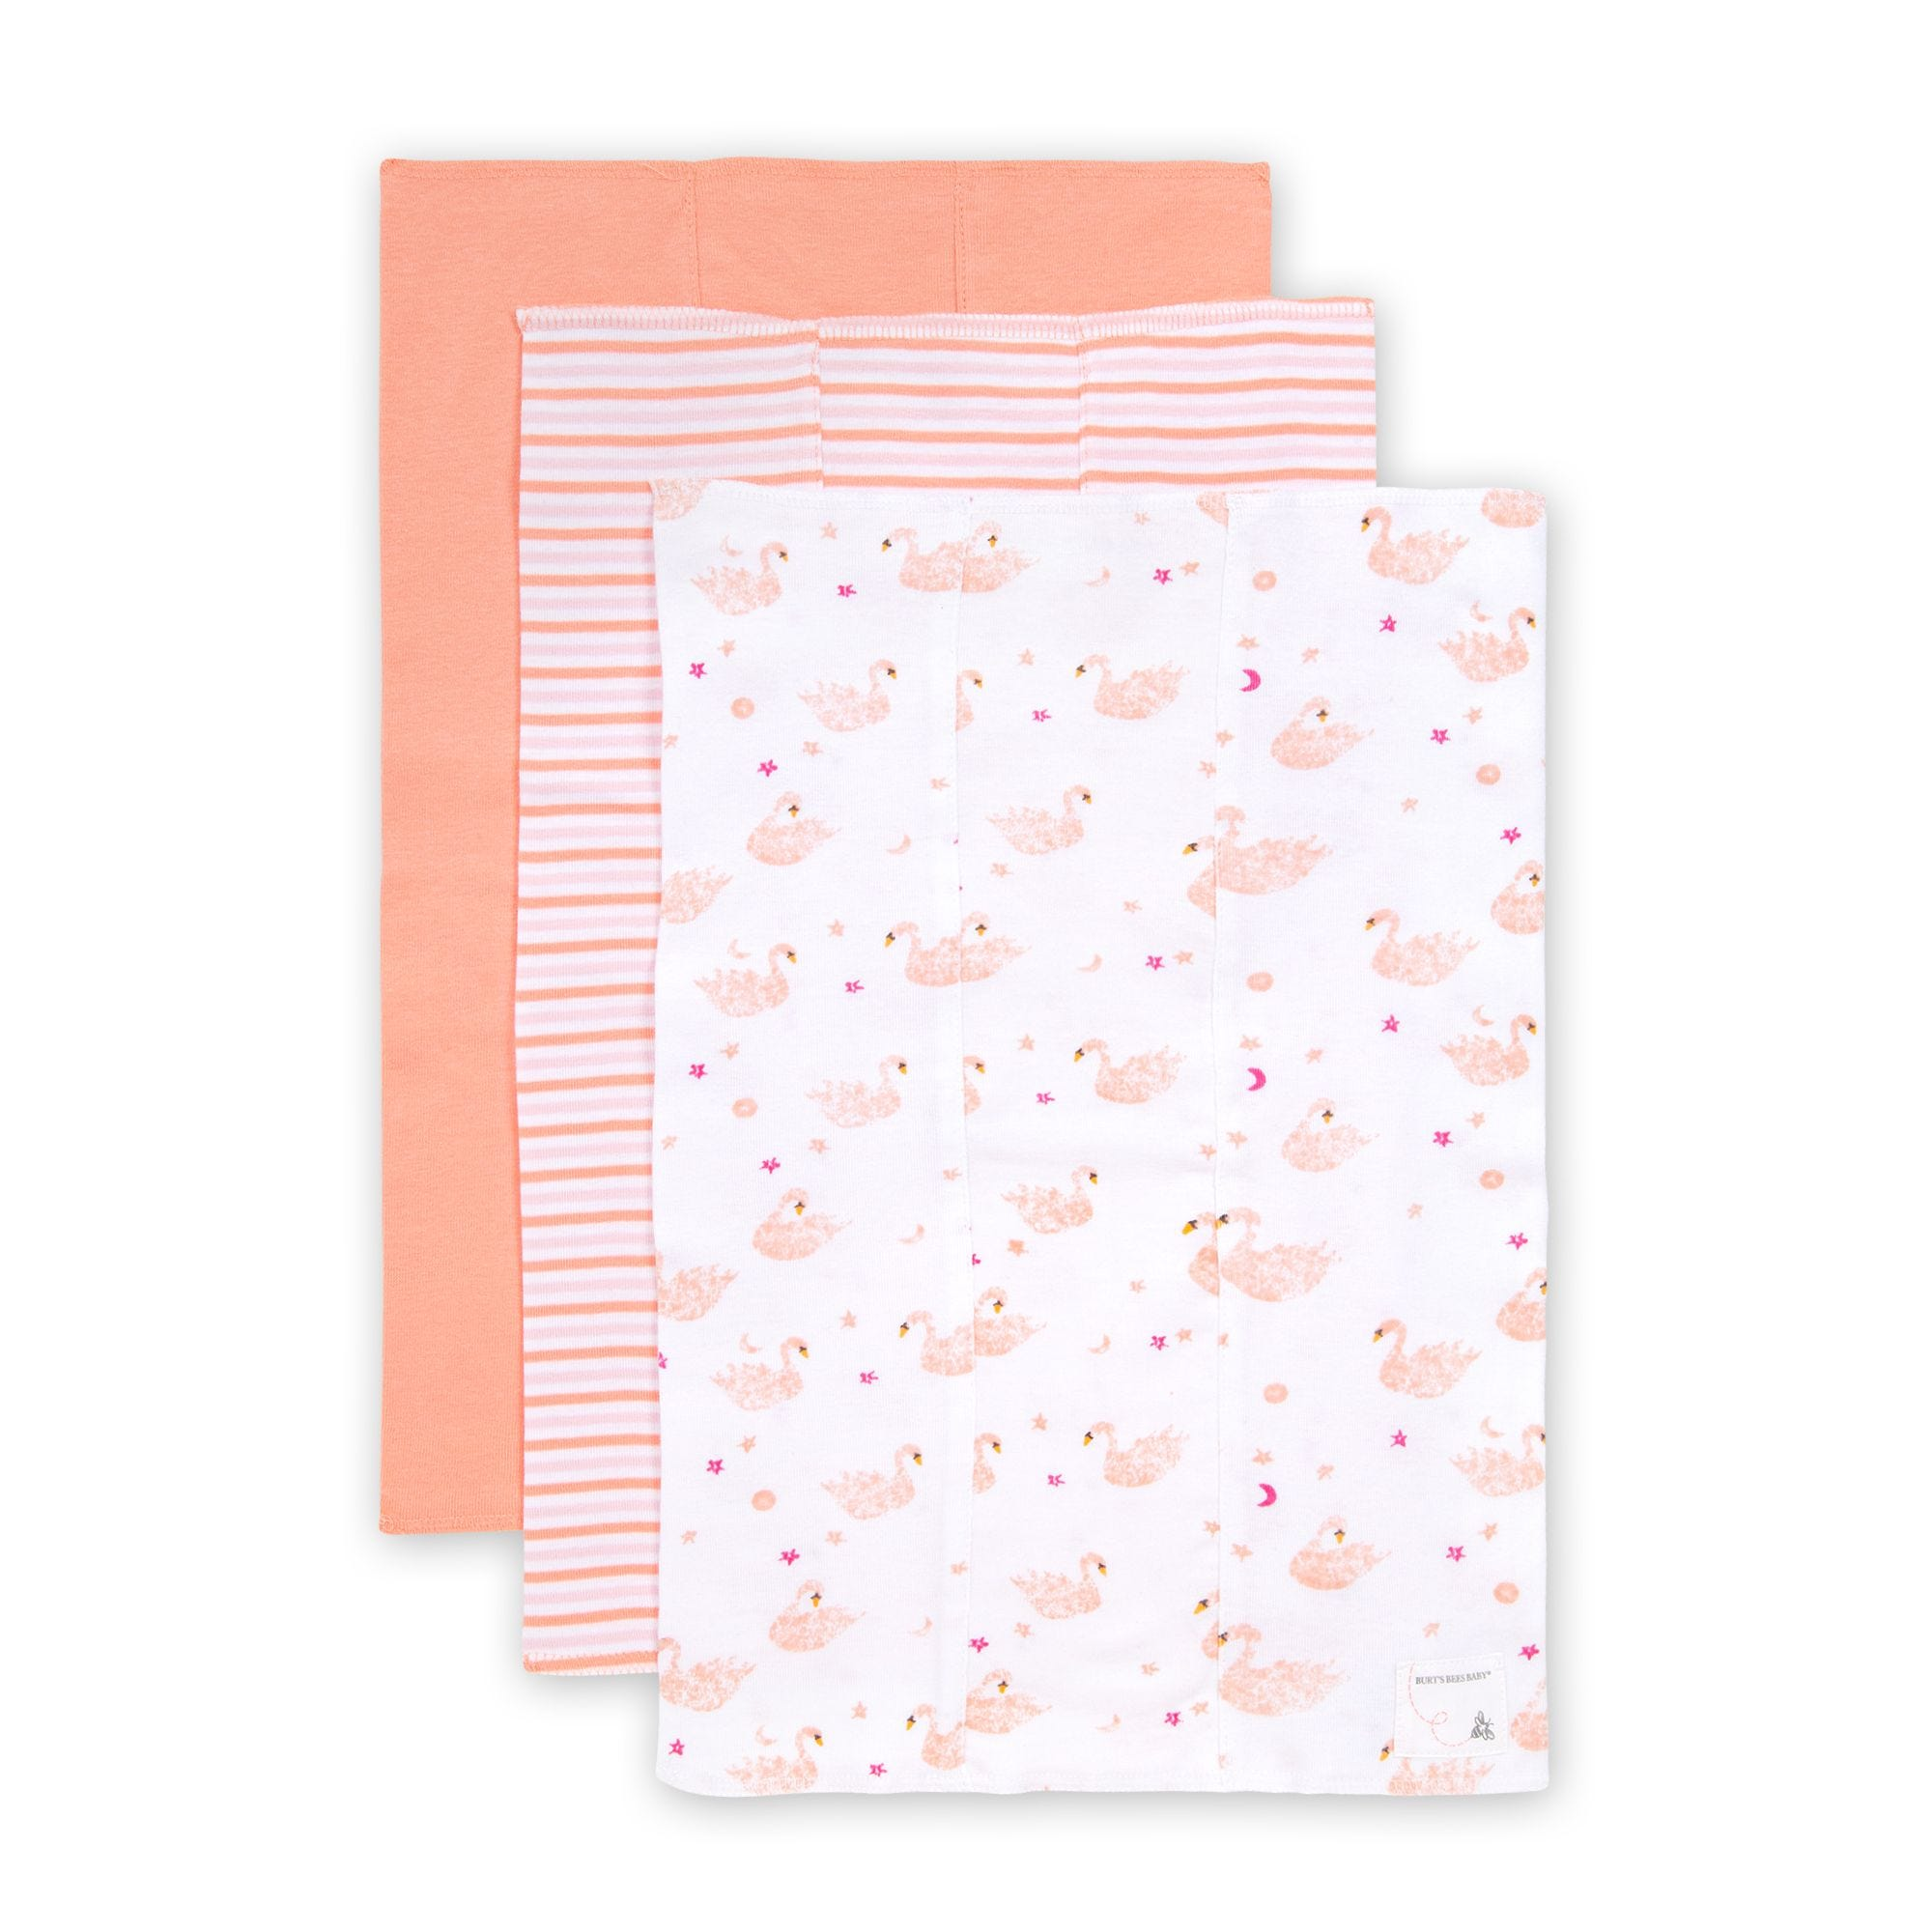 BEAUTIFUL BEGINNINGS 4 BABY WASH CLOTHES TOWELS CHILD NEWBORN BABY DRIBBLE CLOTH